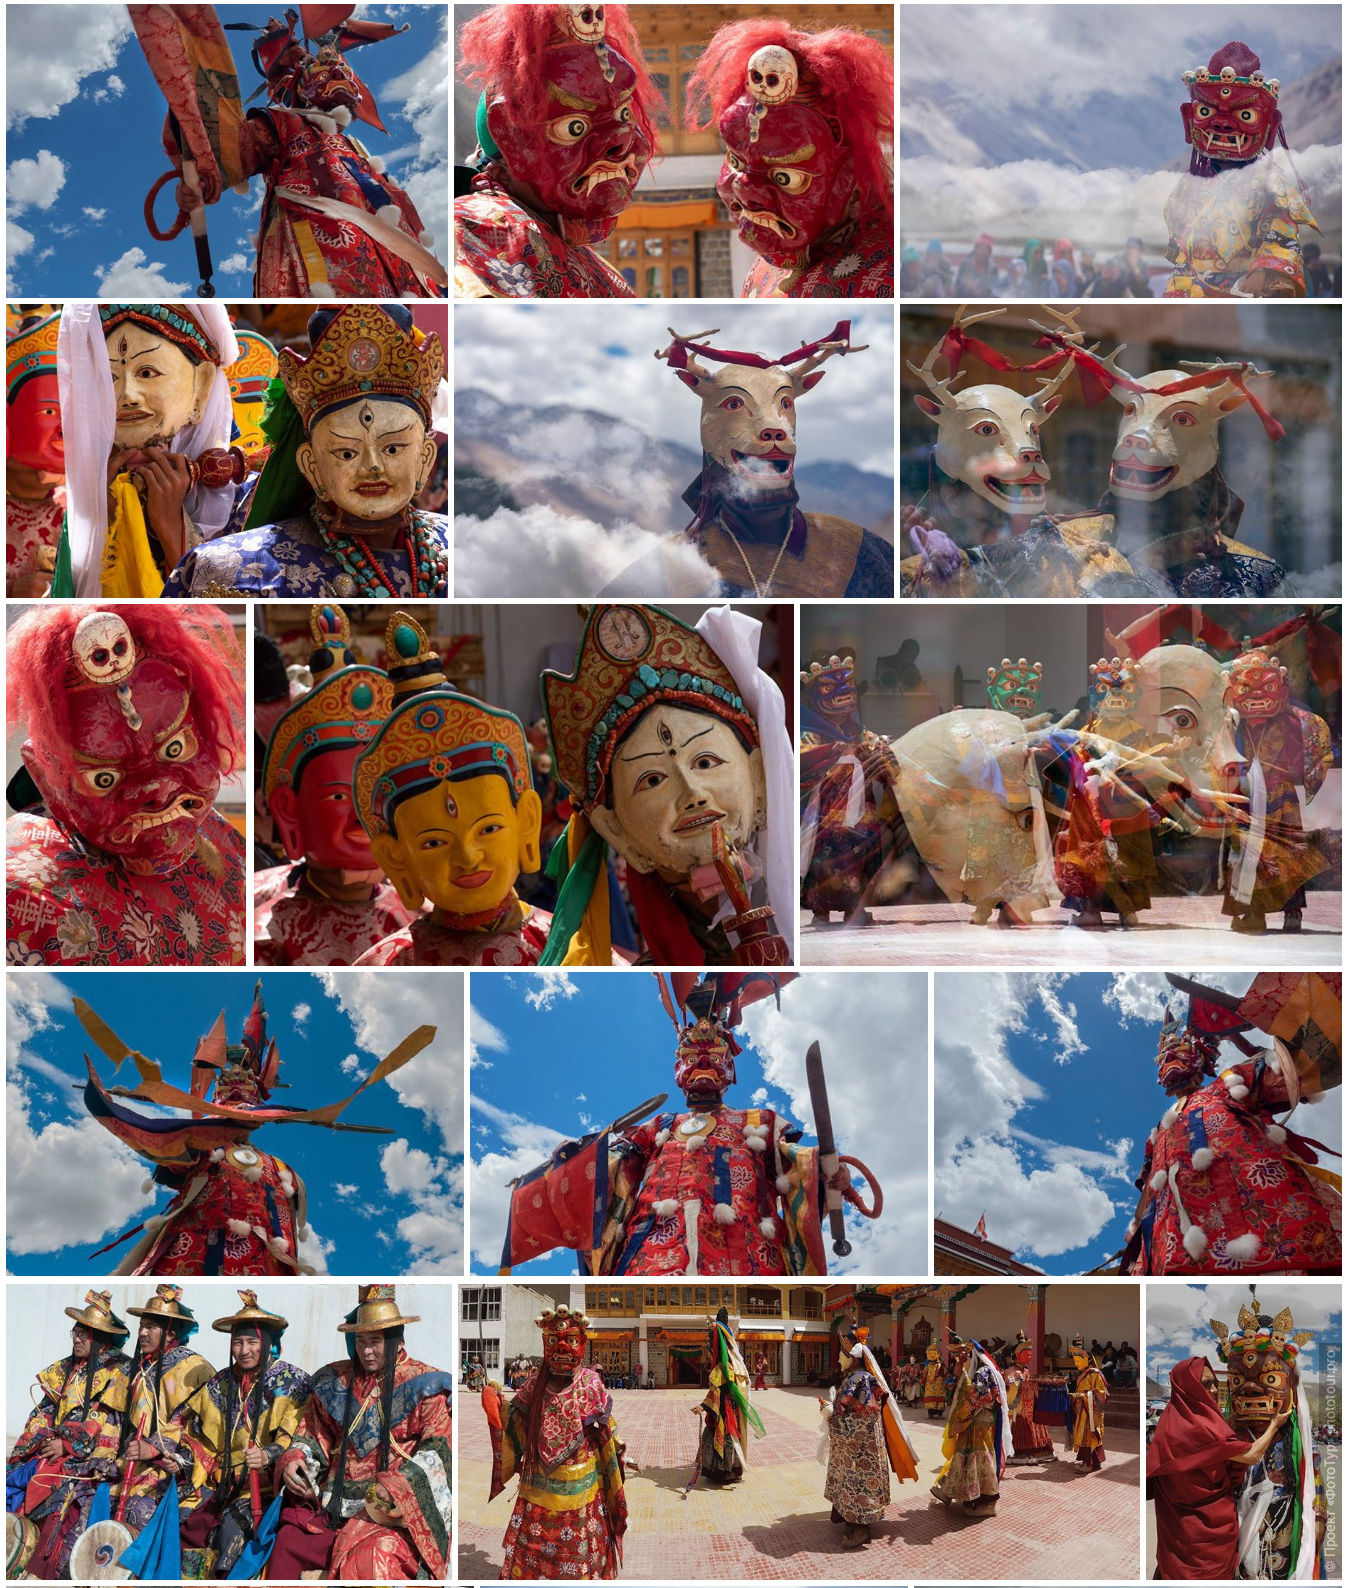 Tsam dance at the Buddhist mystery Sashikul Gustor. Photo tour / tour Tibet of Lake-1: Pangong, Tso Moriri, Tso Kar, Tso Chiagar, Dance of Tsam on Lake Pangong, 19.06. - 28.06.2021.